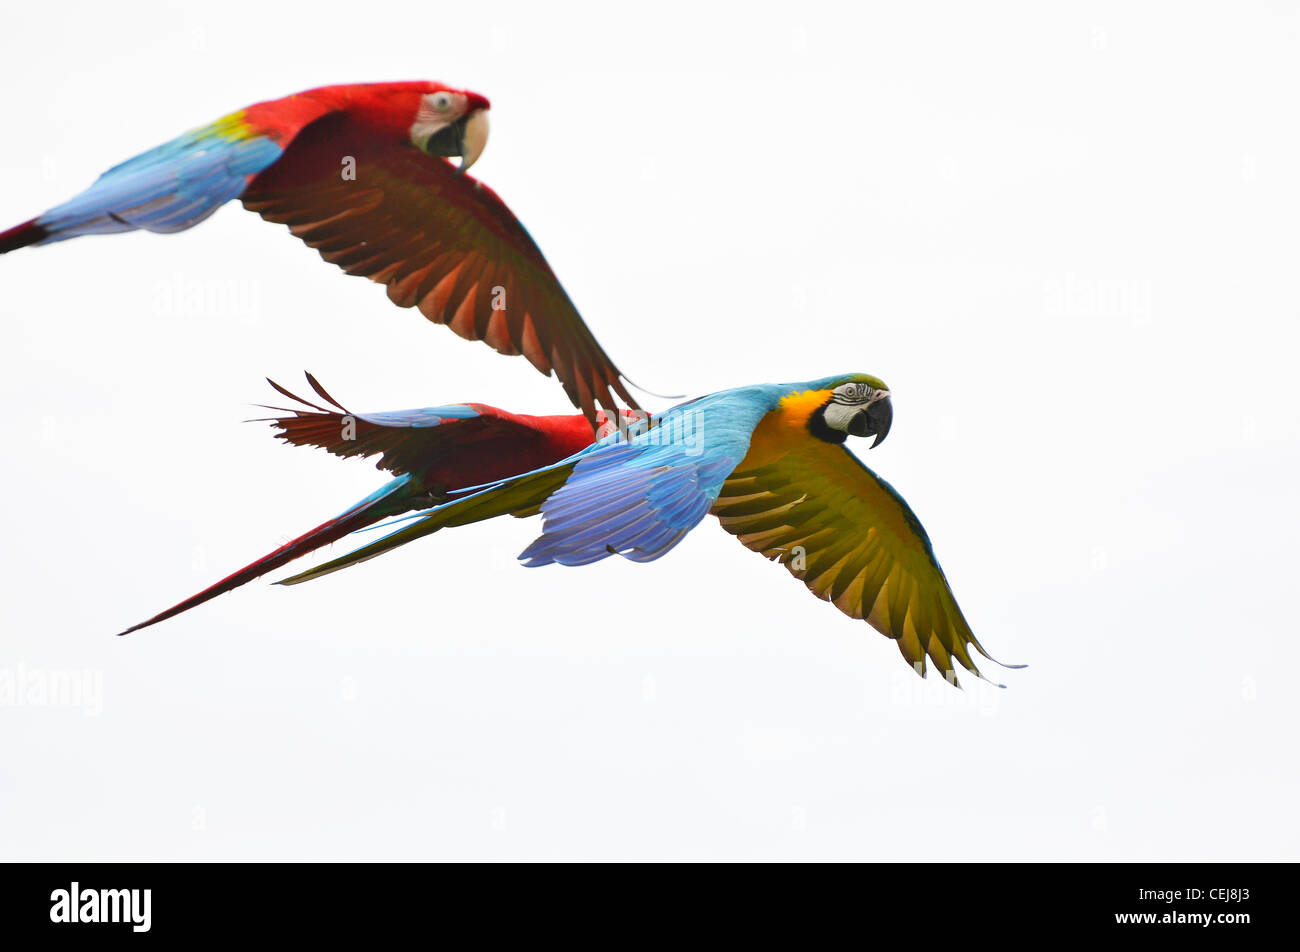 Blue, red and yellow parrots flying, in flight - Stock Image